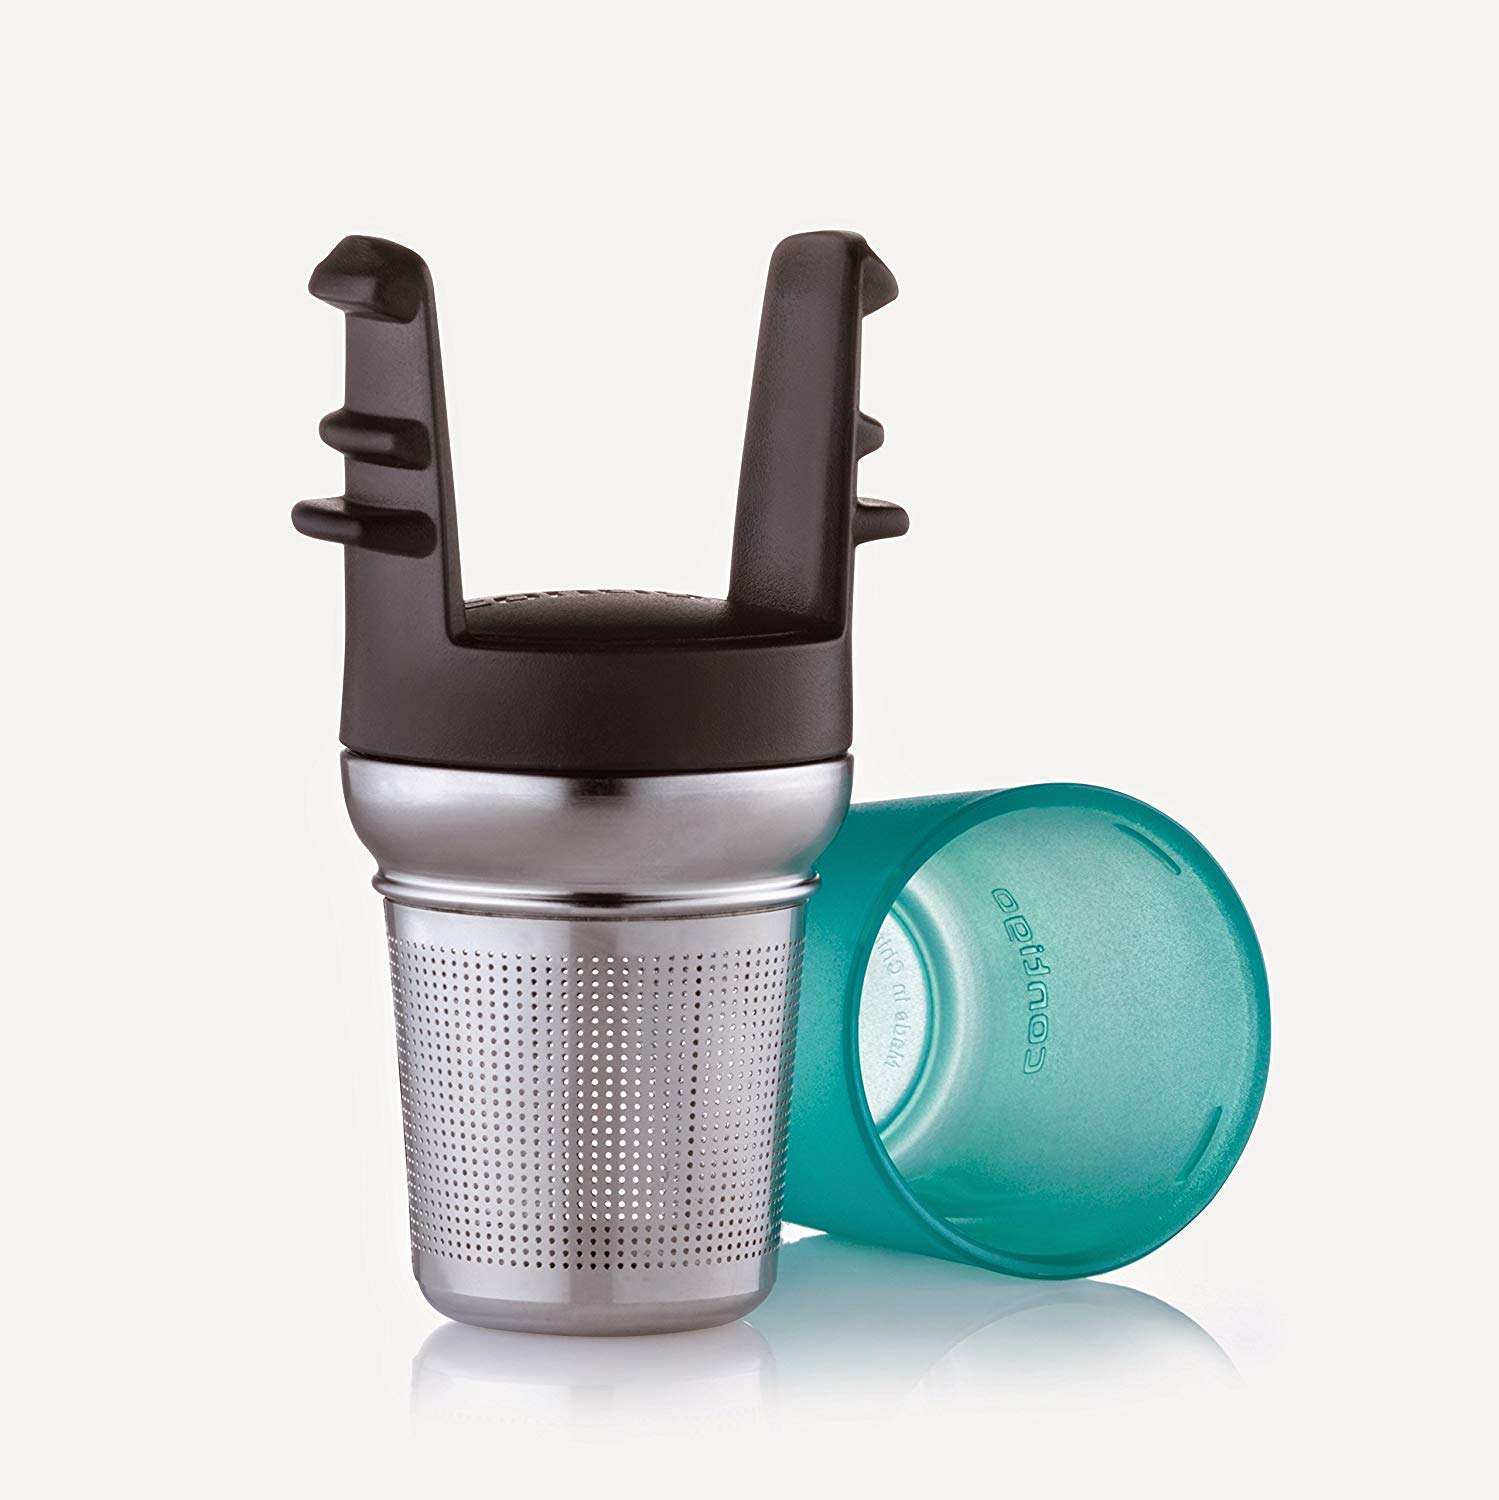 Contigo west loop travel mug tea infuser accessory